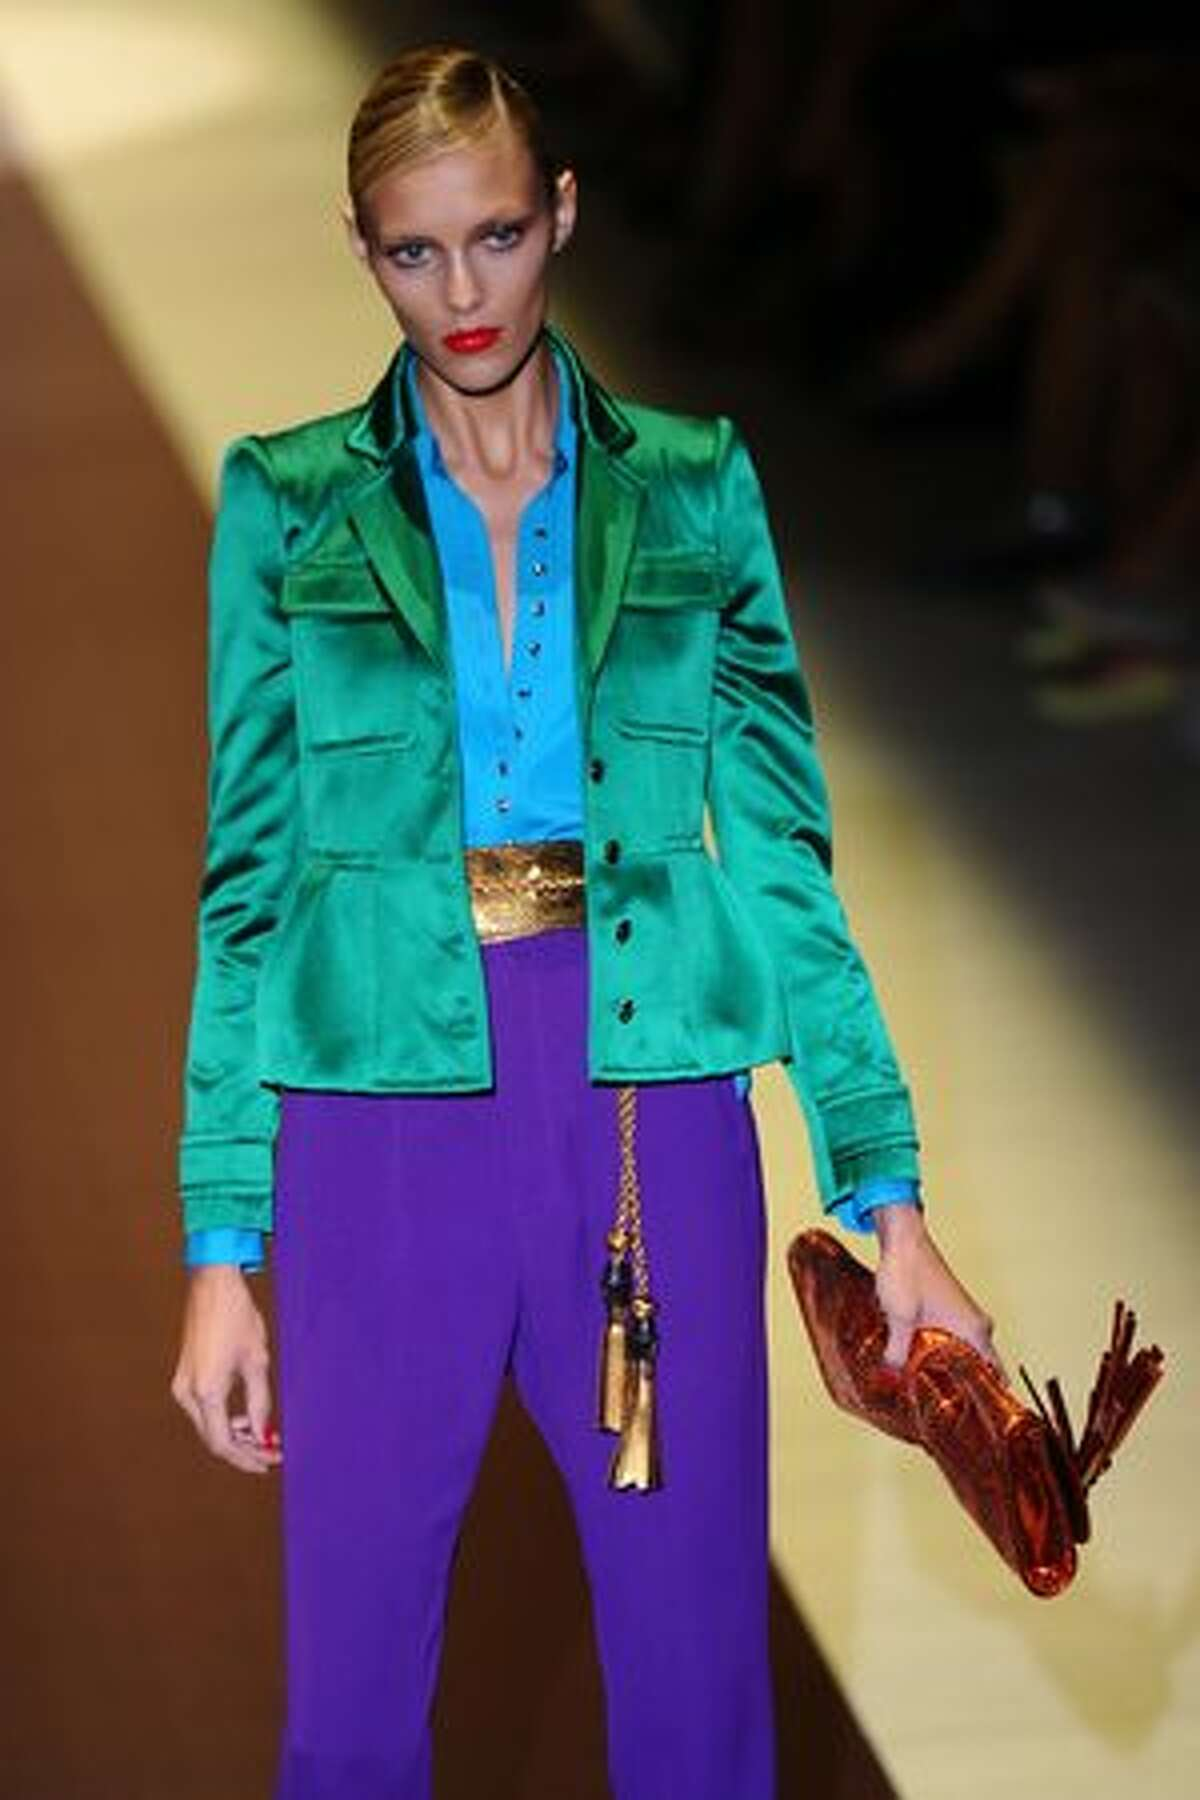 A model displays a creation as part of Gucci spring-summer 2011 ready-to-wear collection during the women's fashion week in Milan.